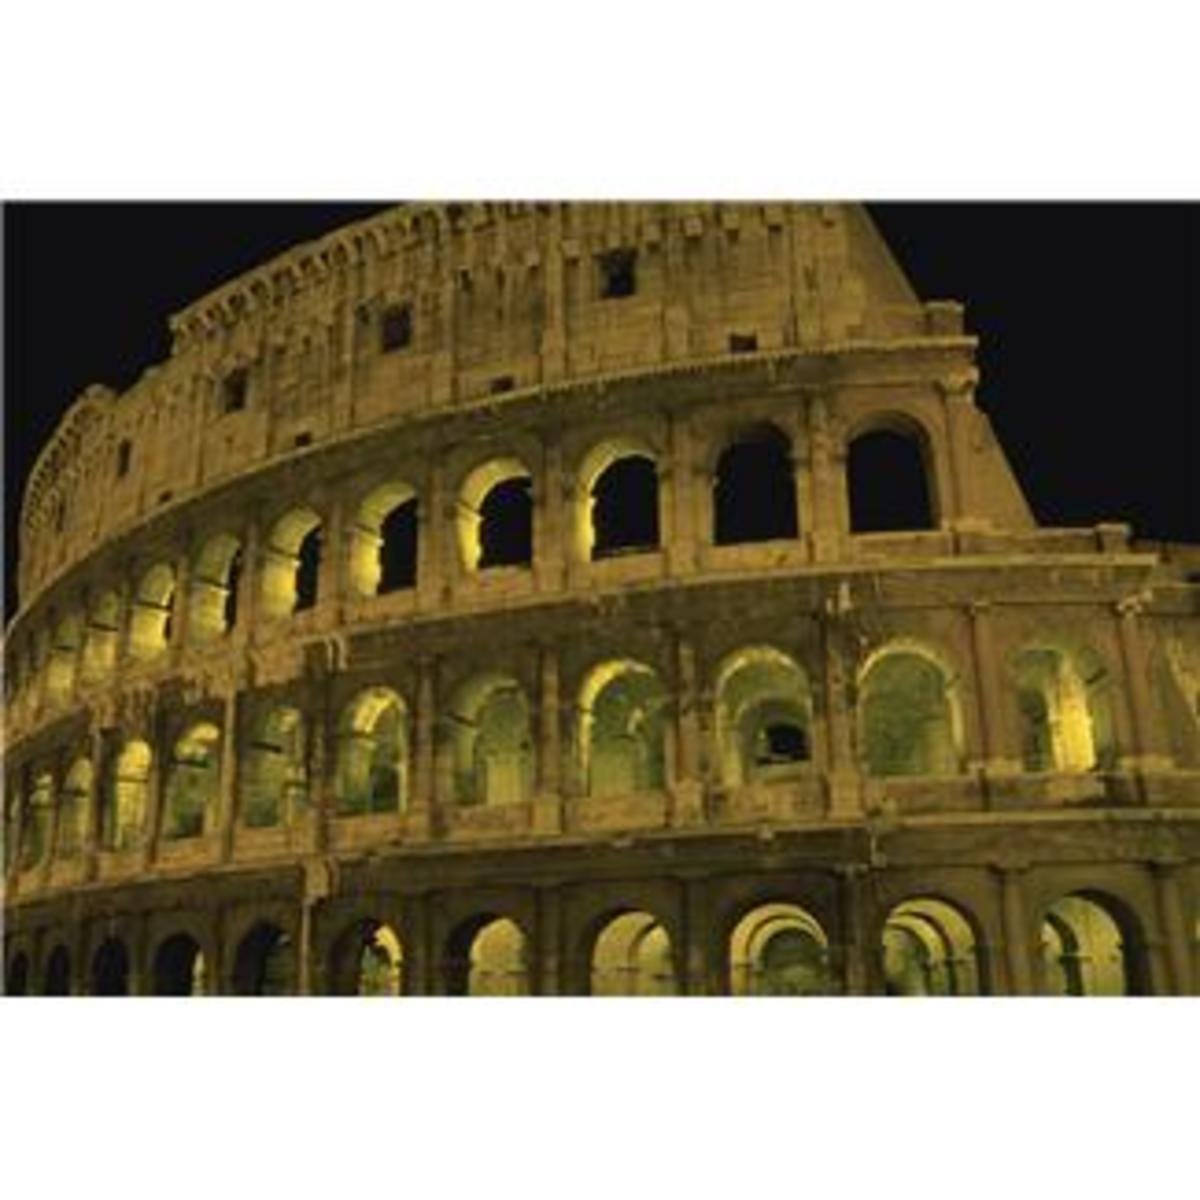 The Roman Coliseum after dark.